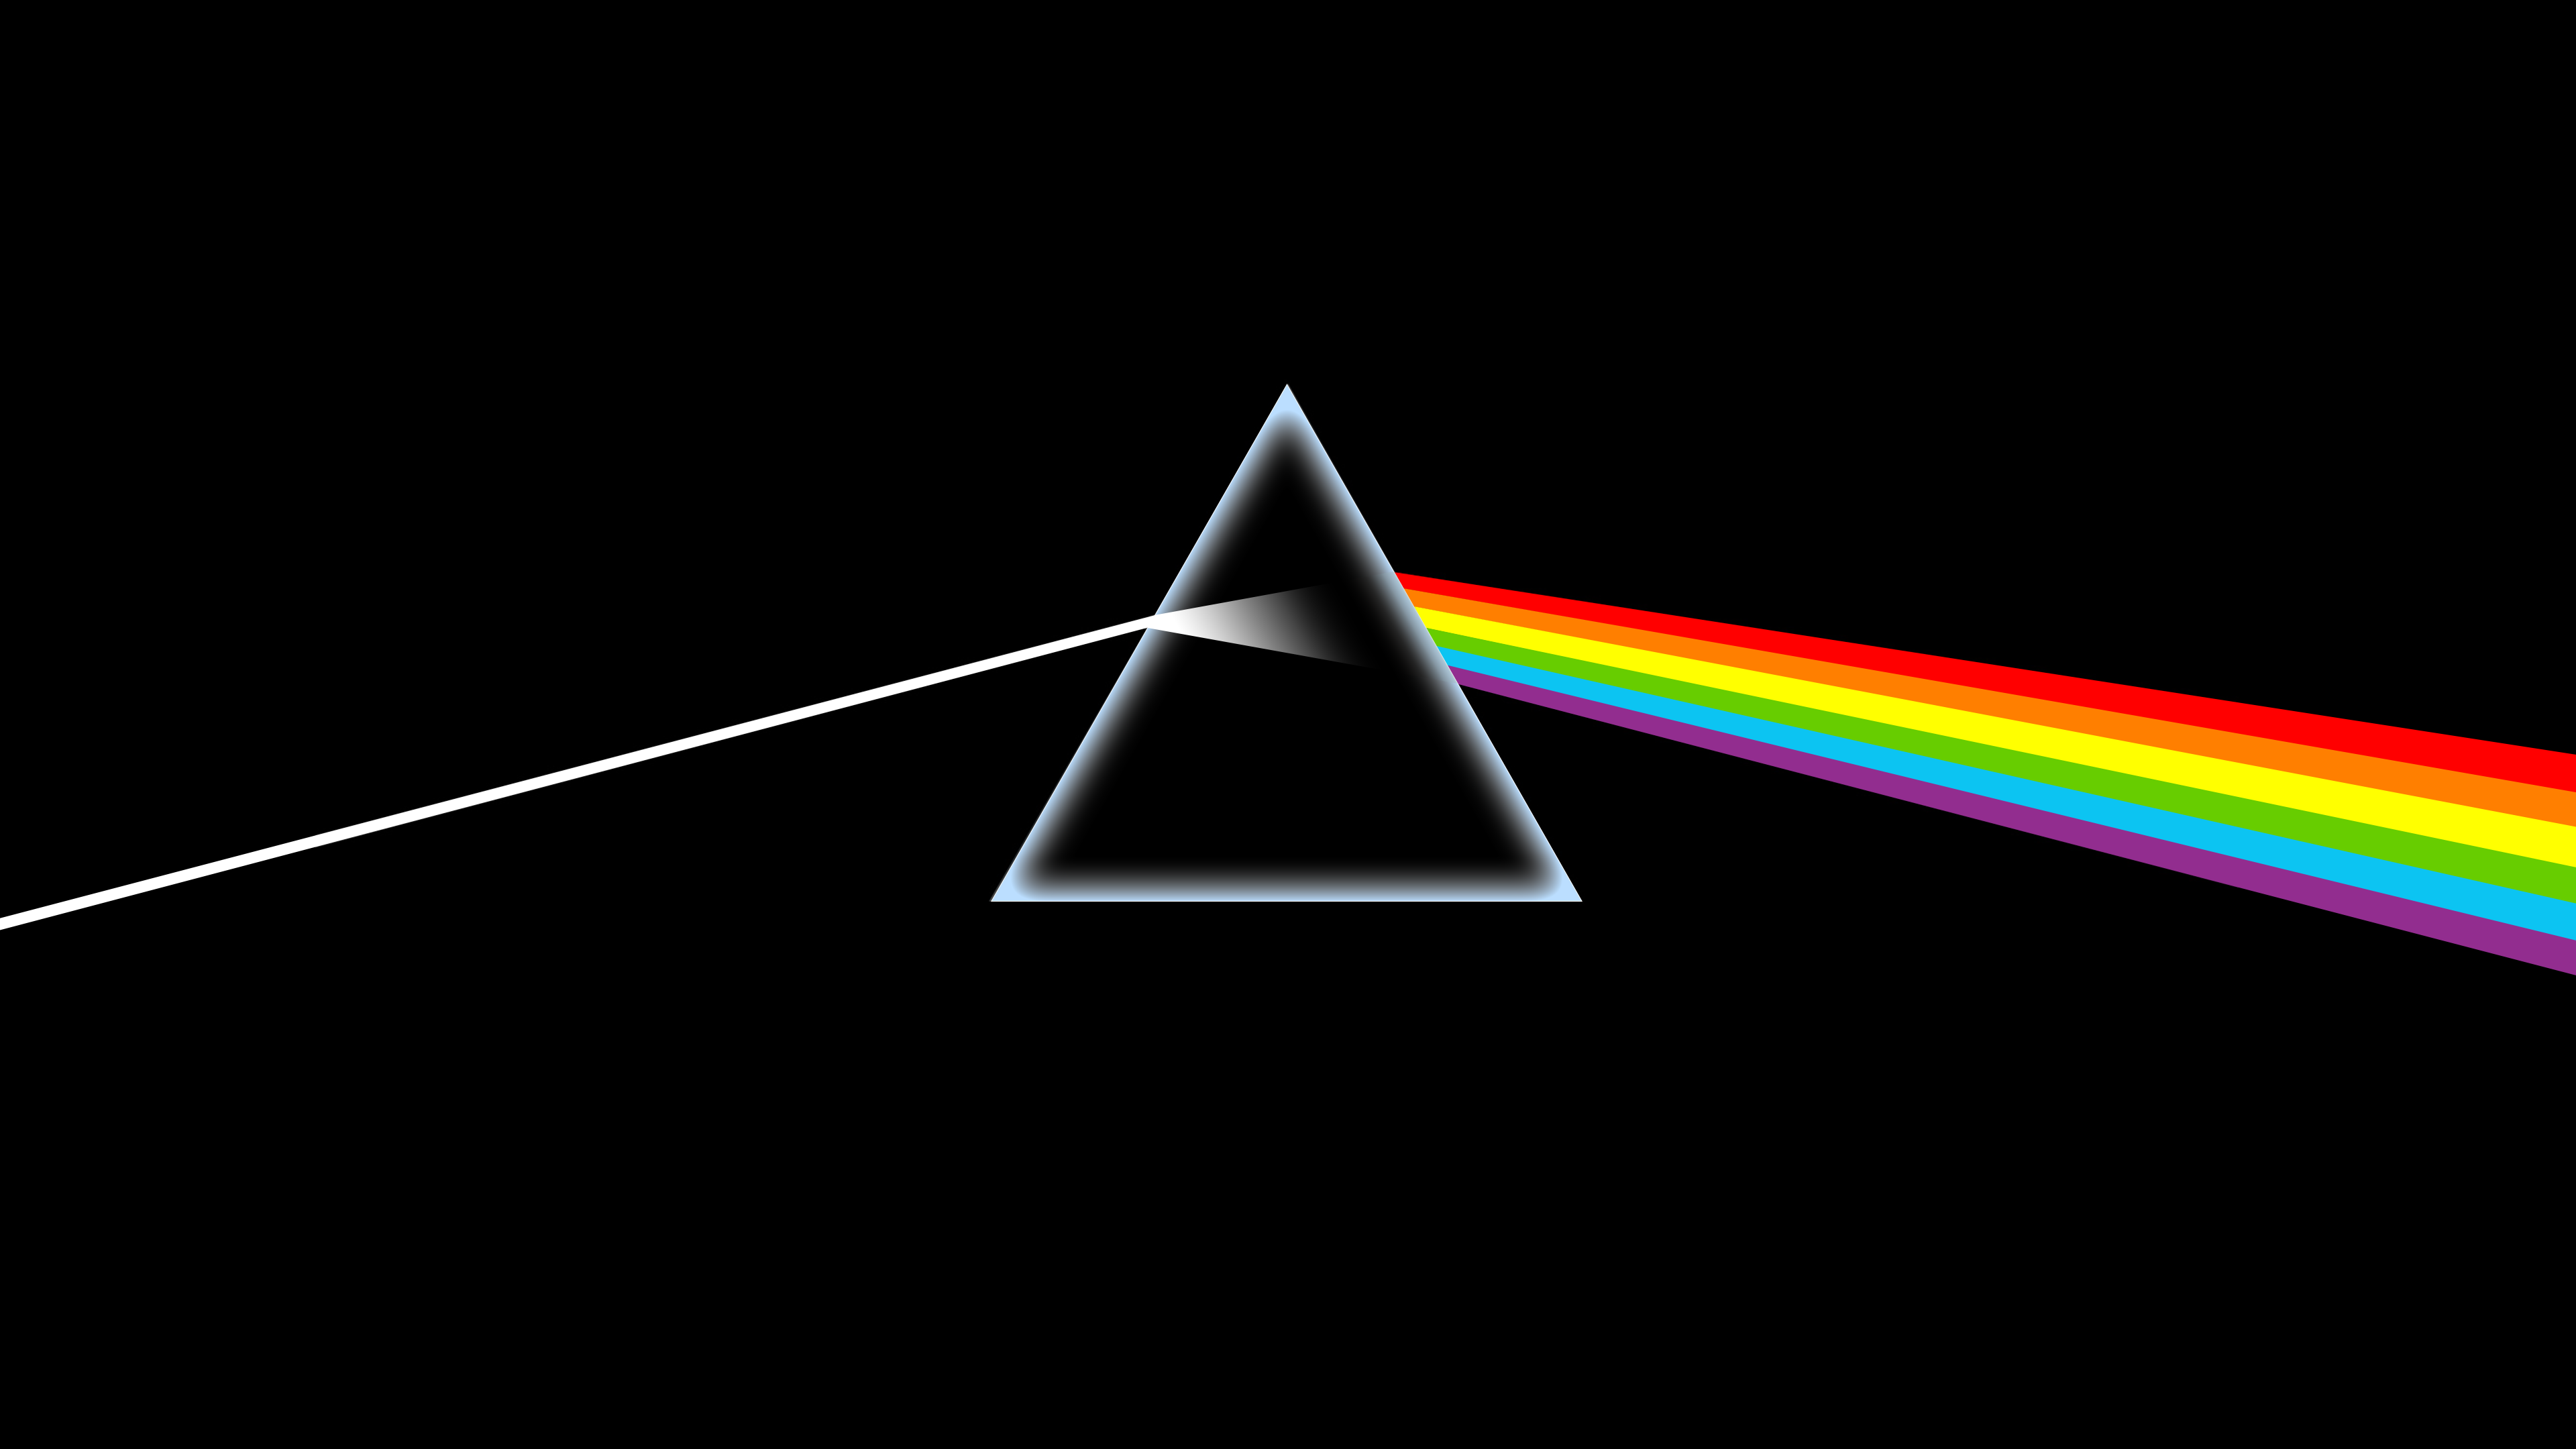 The Dark Side Of The Moon album cover; upscaled to 4k [OC